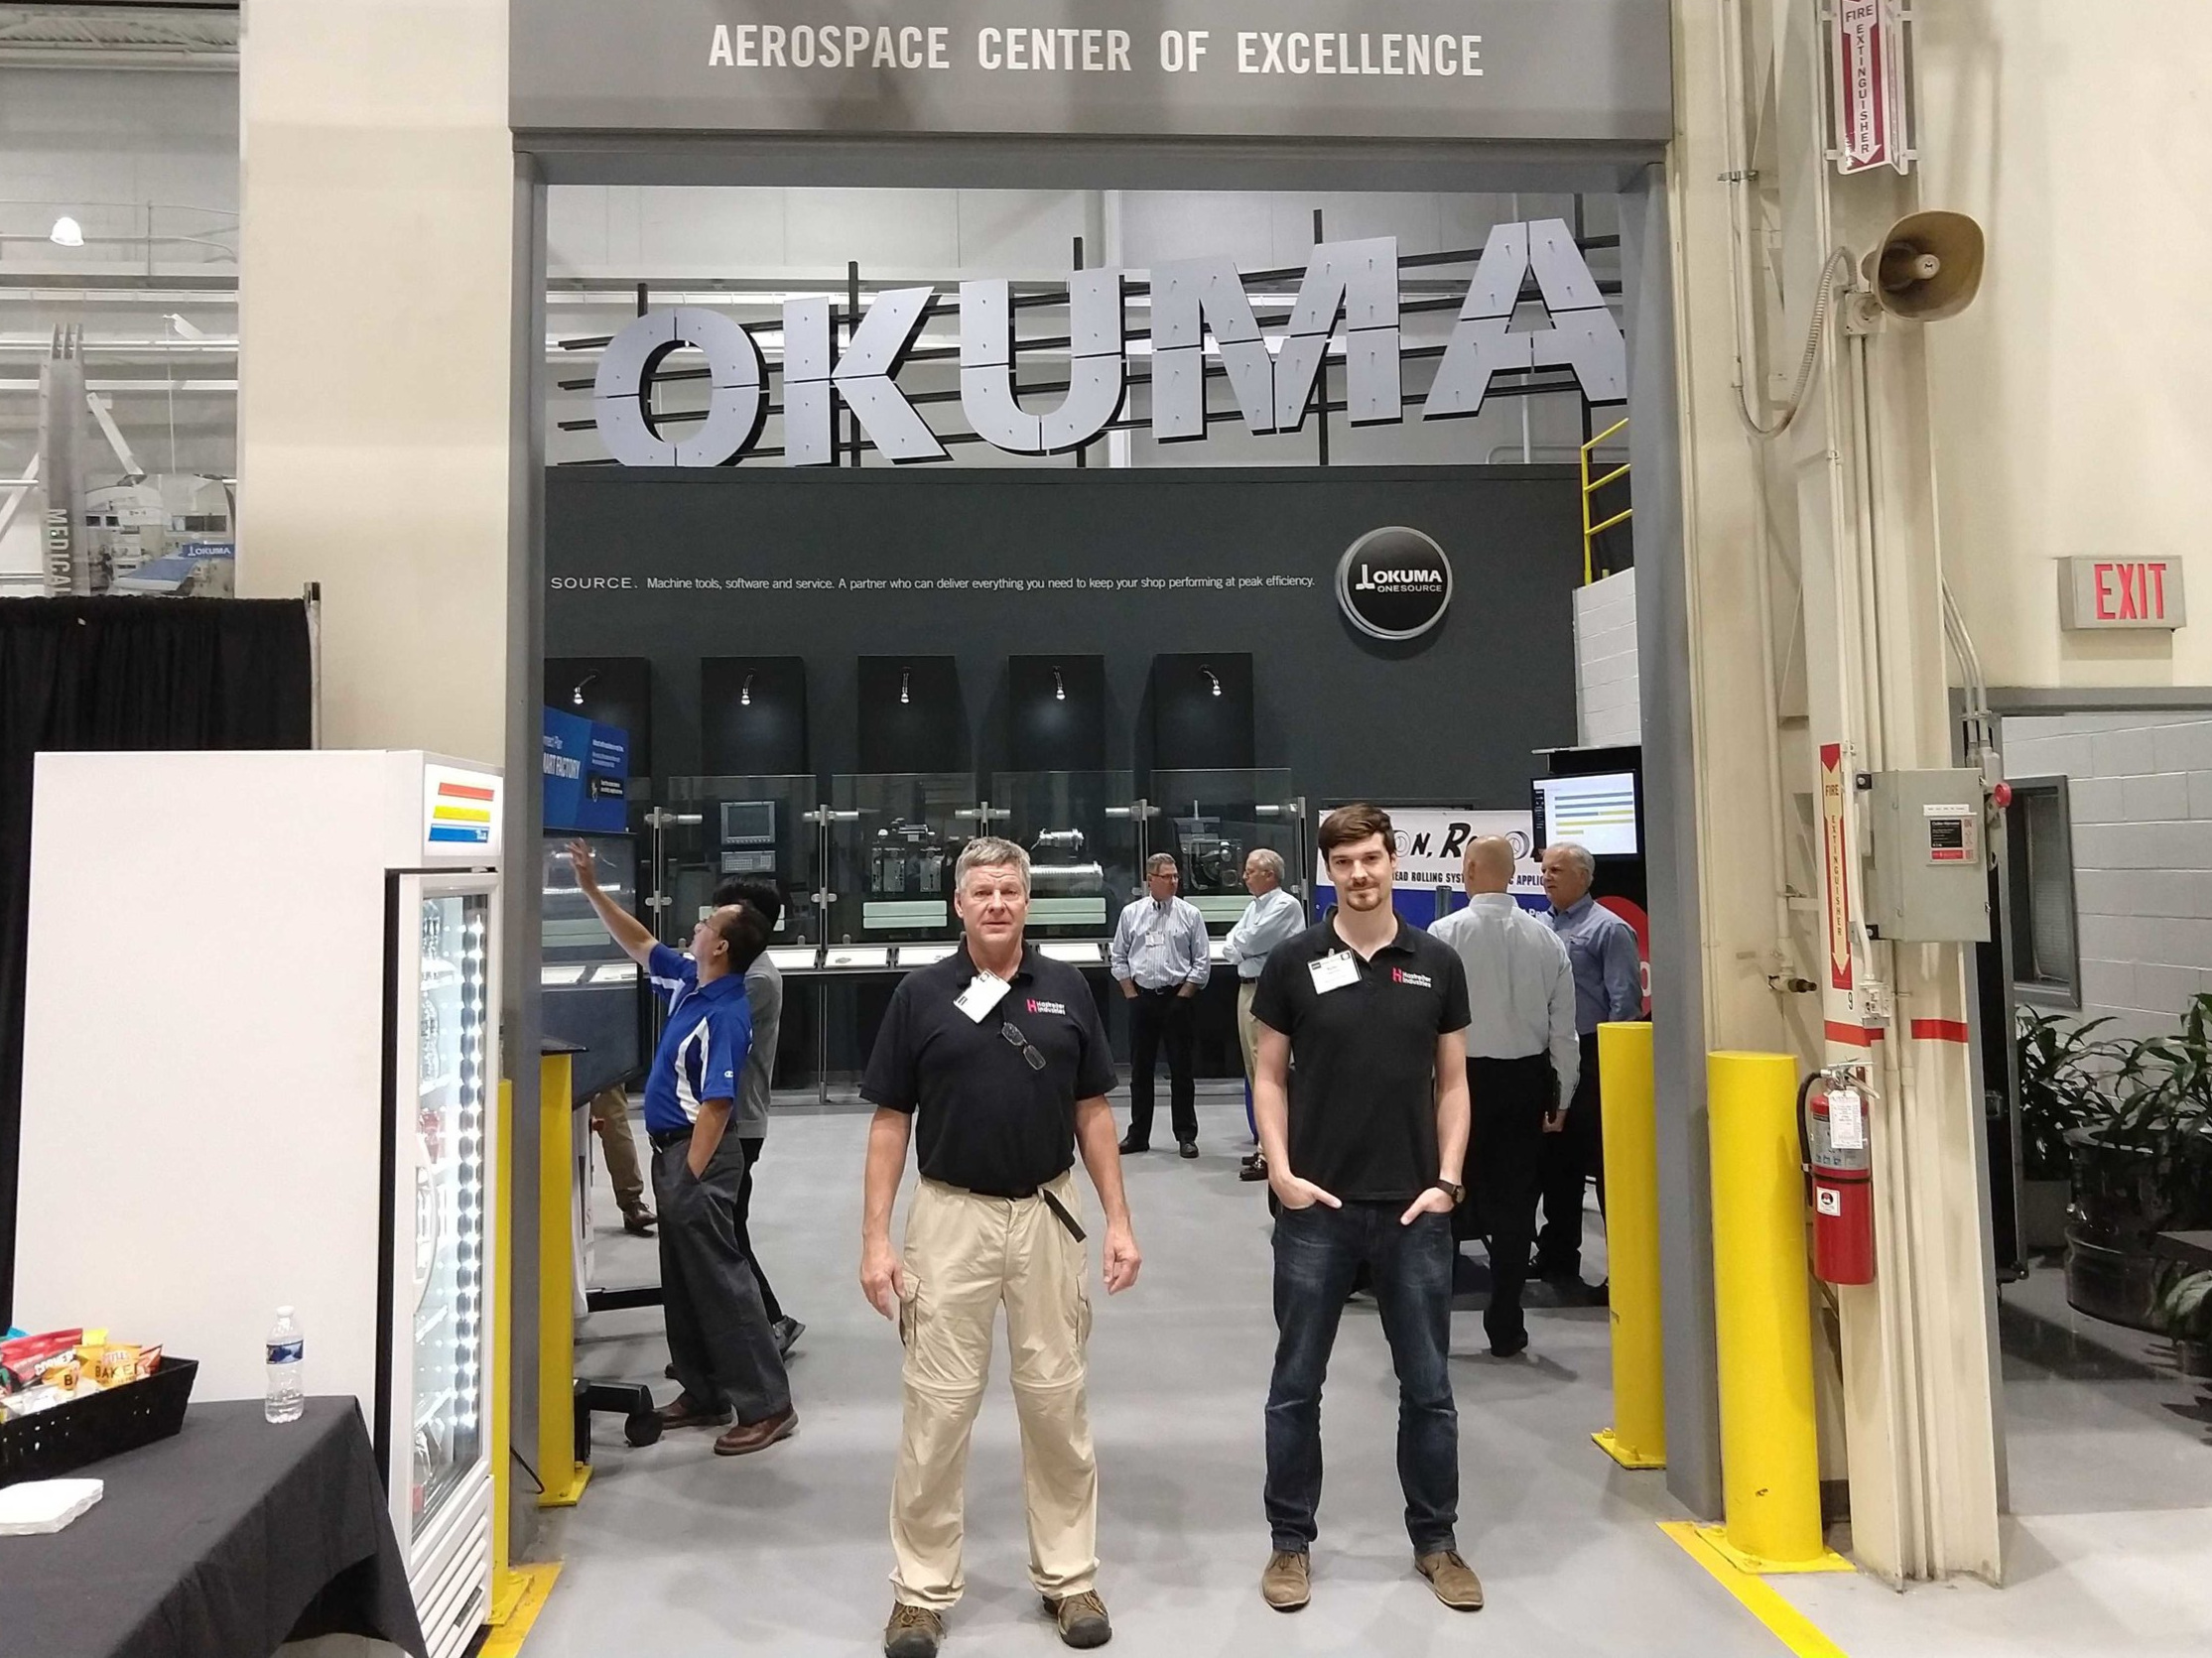 Ken and Kylan Hastreiter at Okuma America Headquarters in North Carolina. Hastreiter Industries cares deeply about truly understanding and then serving customer needs, while subsequently building long term relationships, in which Hastreiter looks for suppliers with similar mentality.